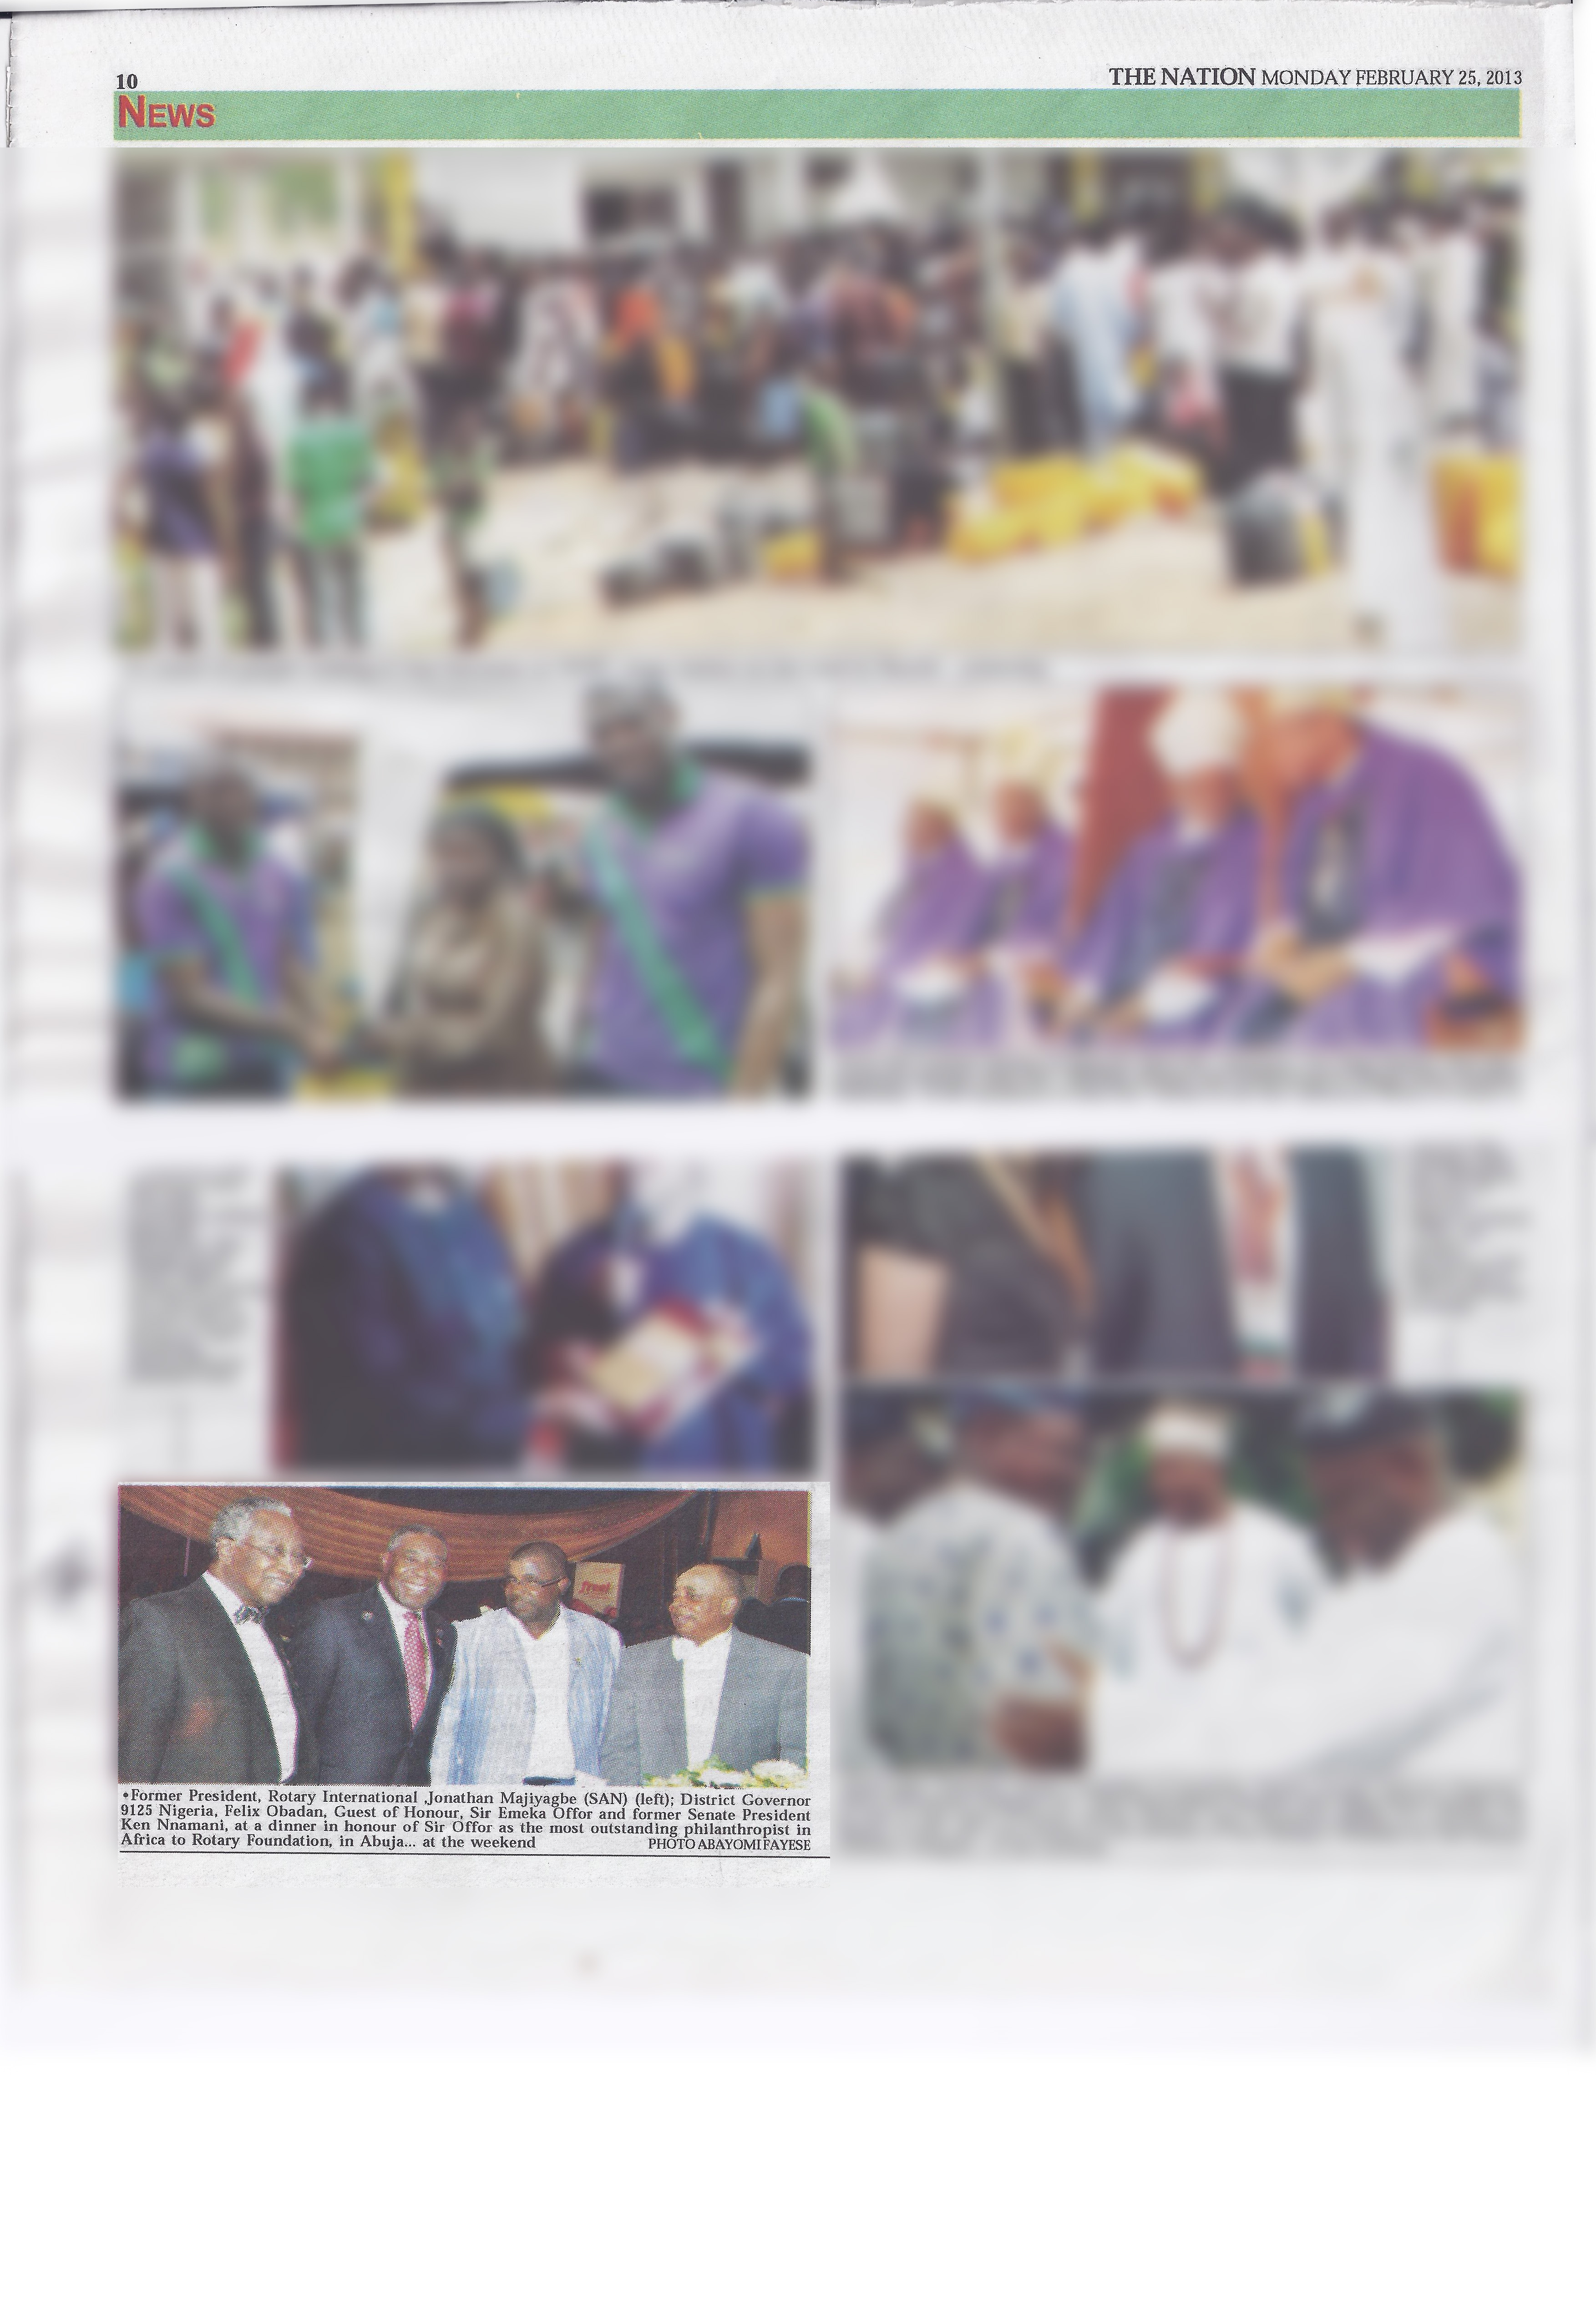 The Nation: February 25, 2013